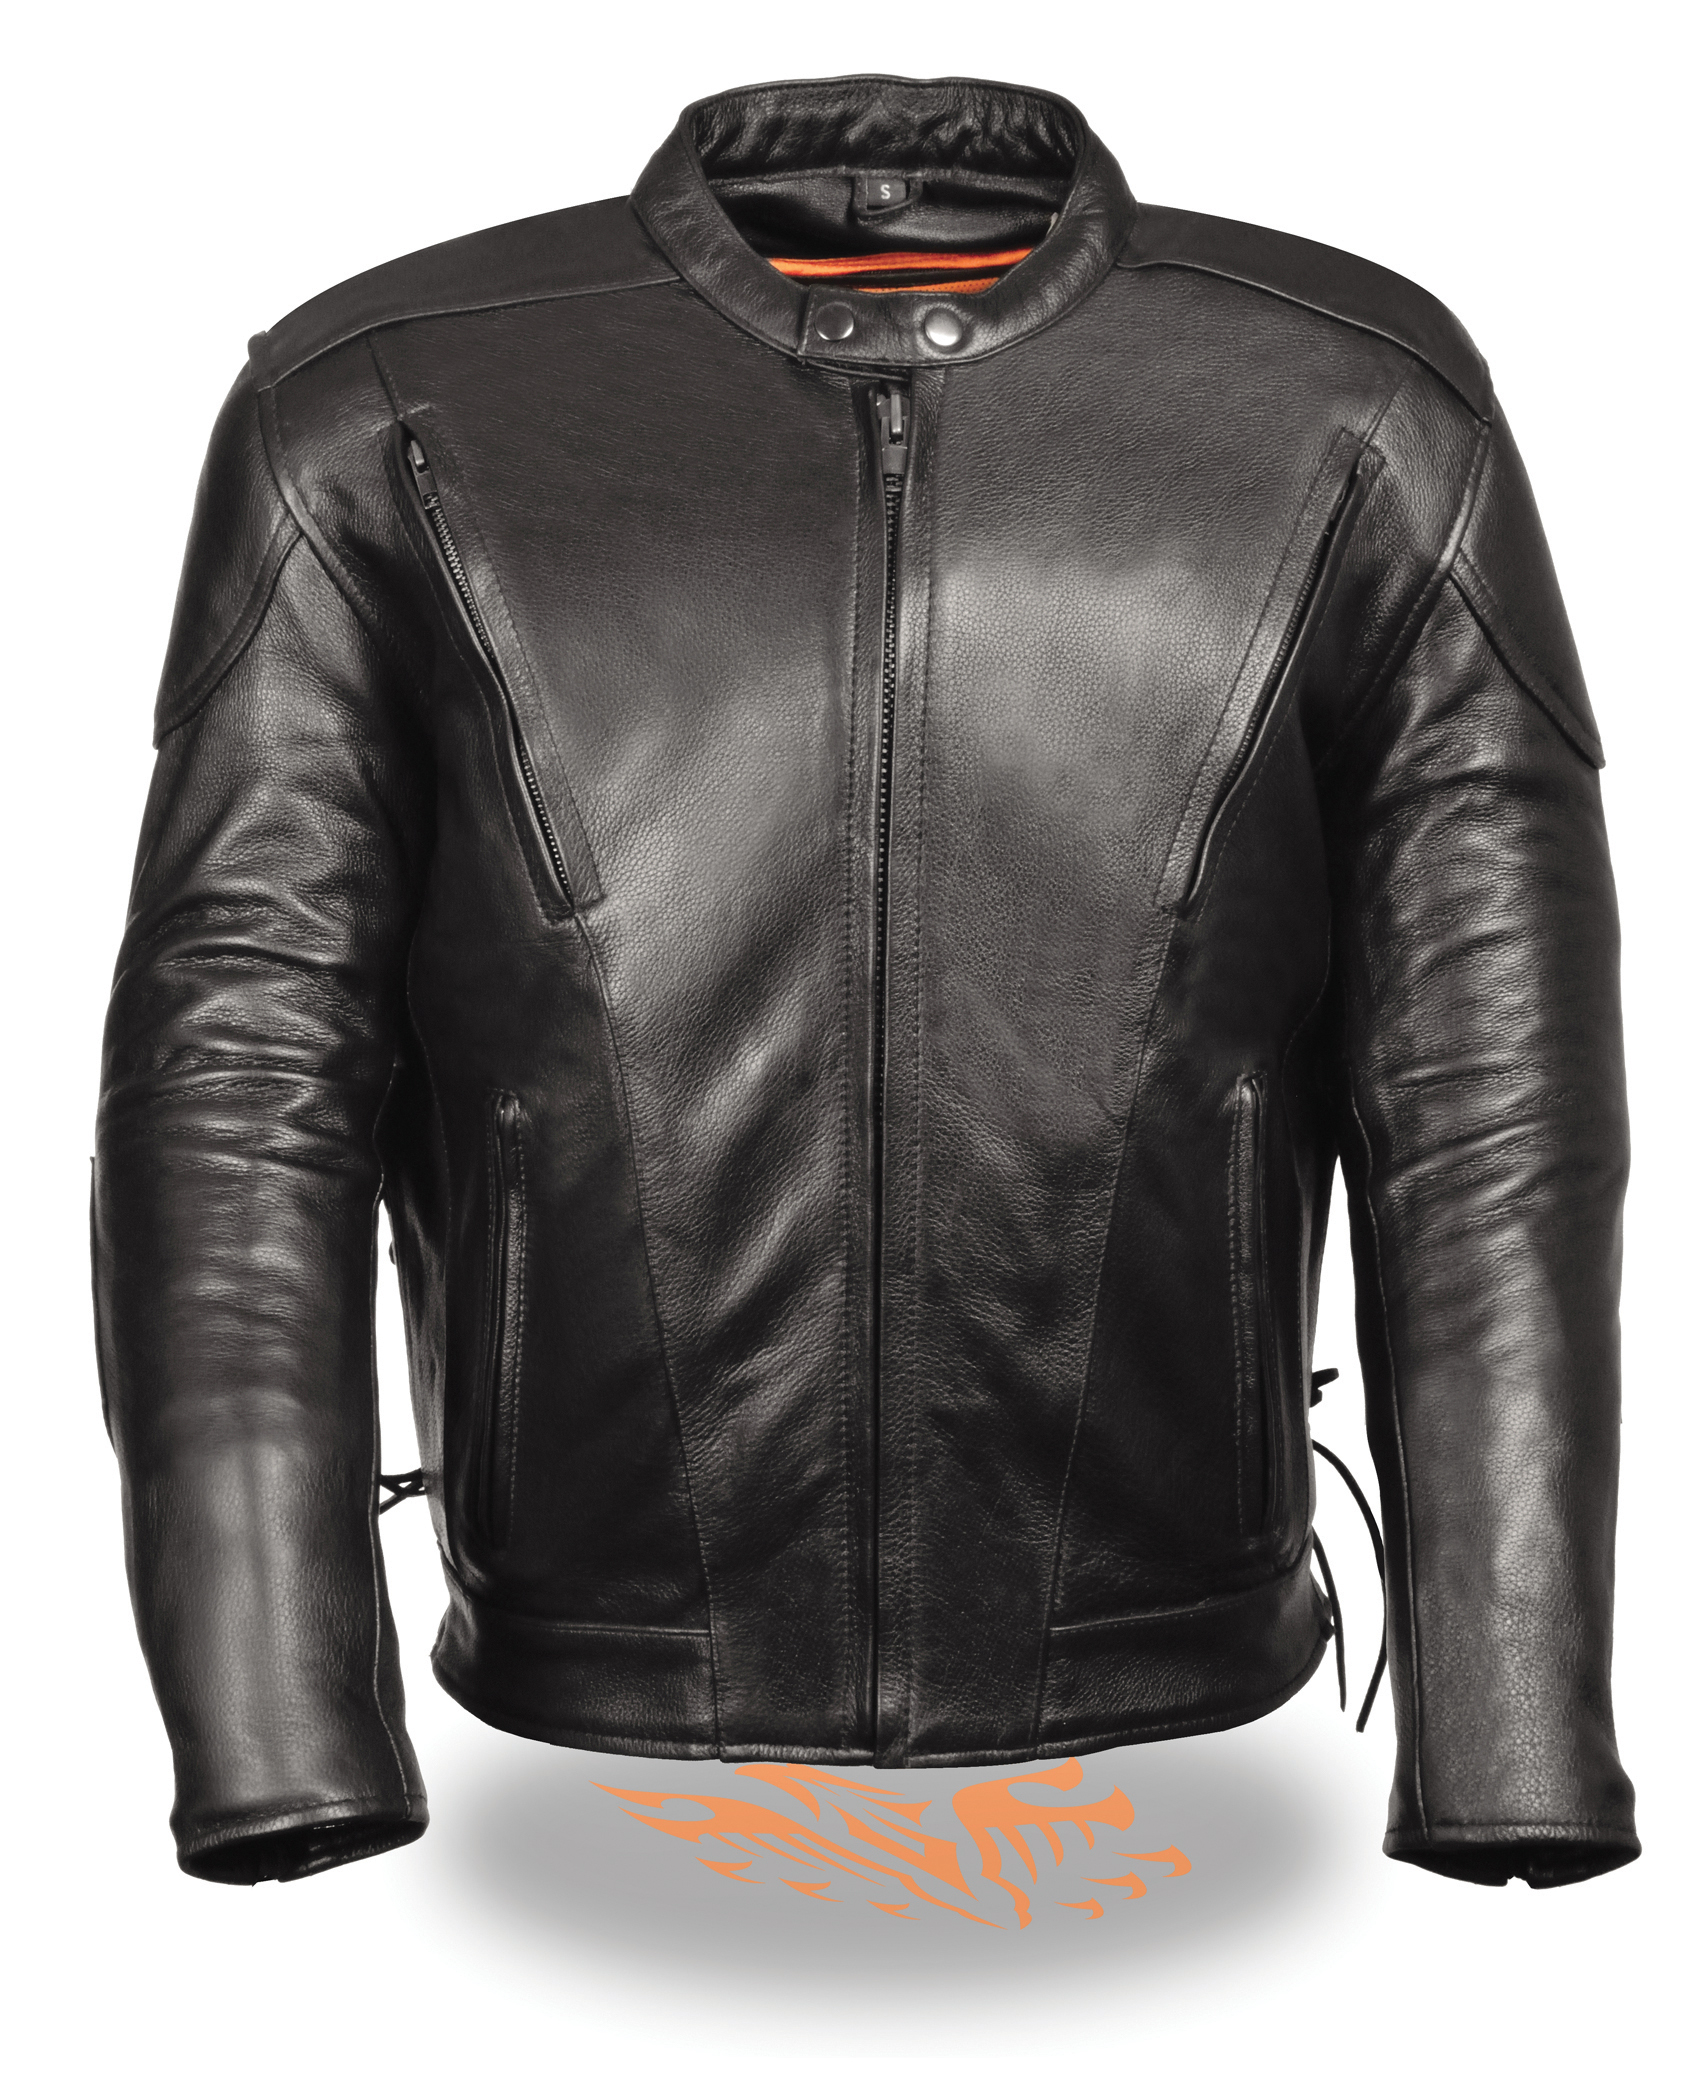 Leather jackets for tall men